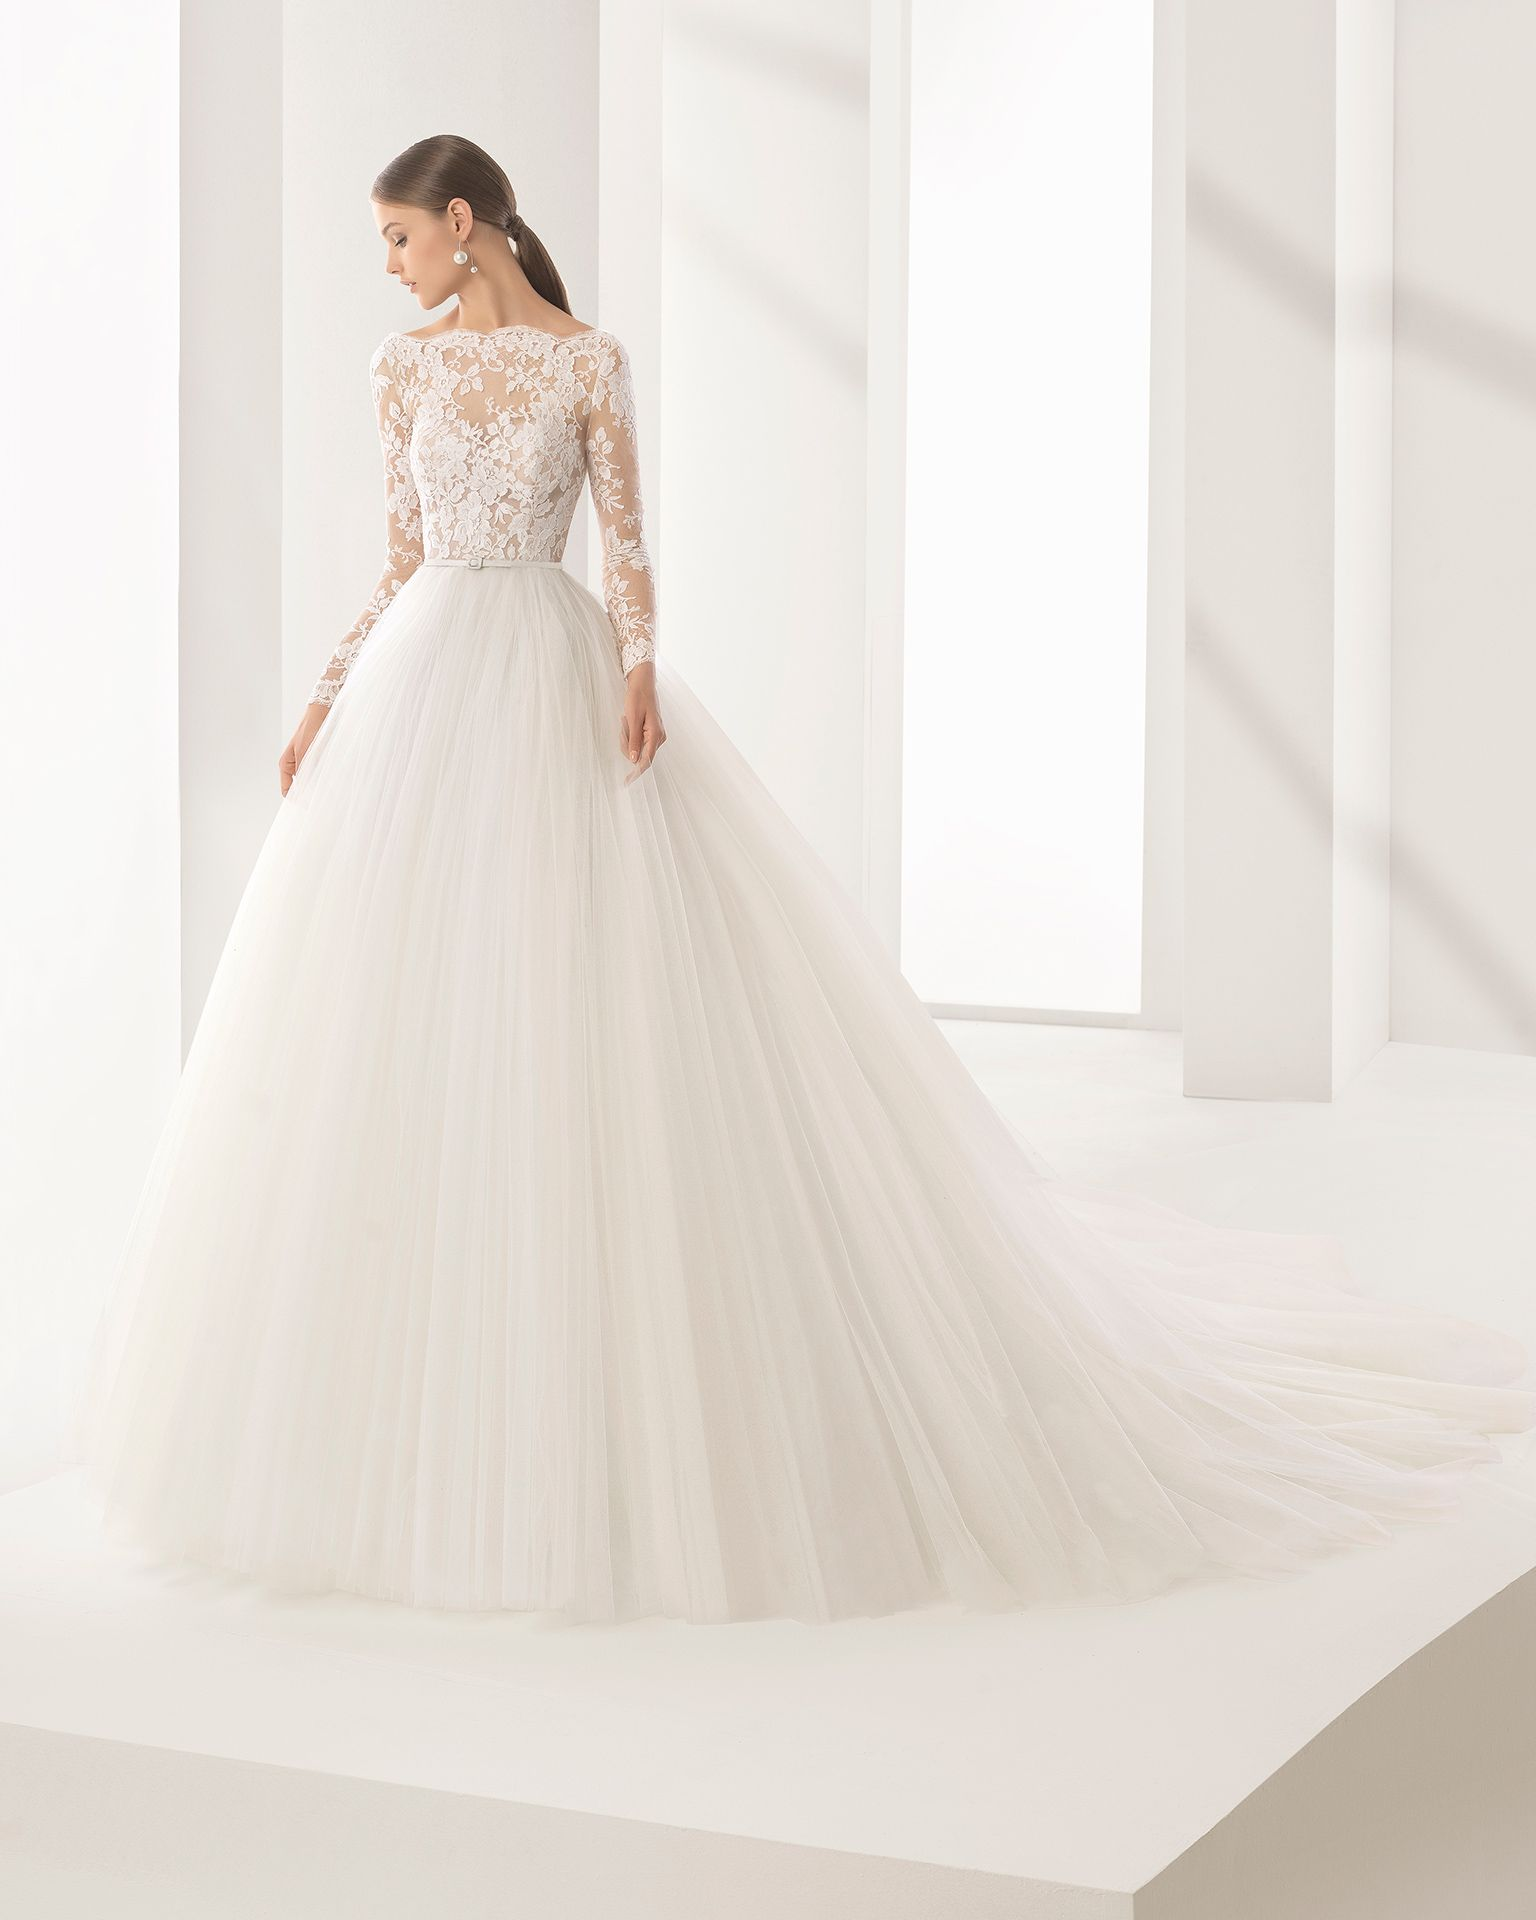 62713845 Princess-style wedding dress with long sleeves, bateau neckline, lace  bodice with sheer inserts and tulle skirt. 2018 Rosa Clará Couture  Collection.